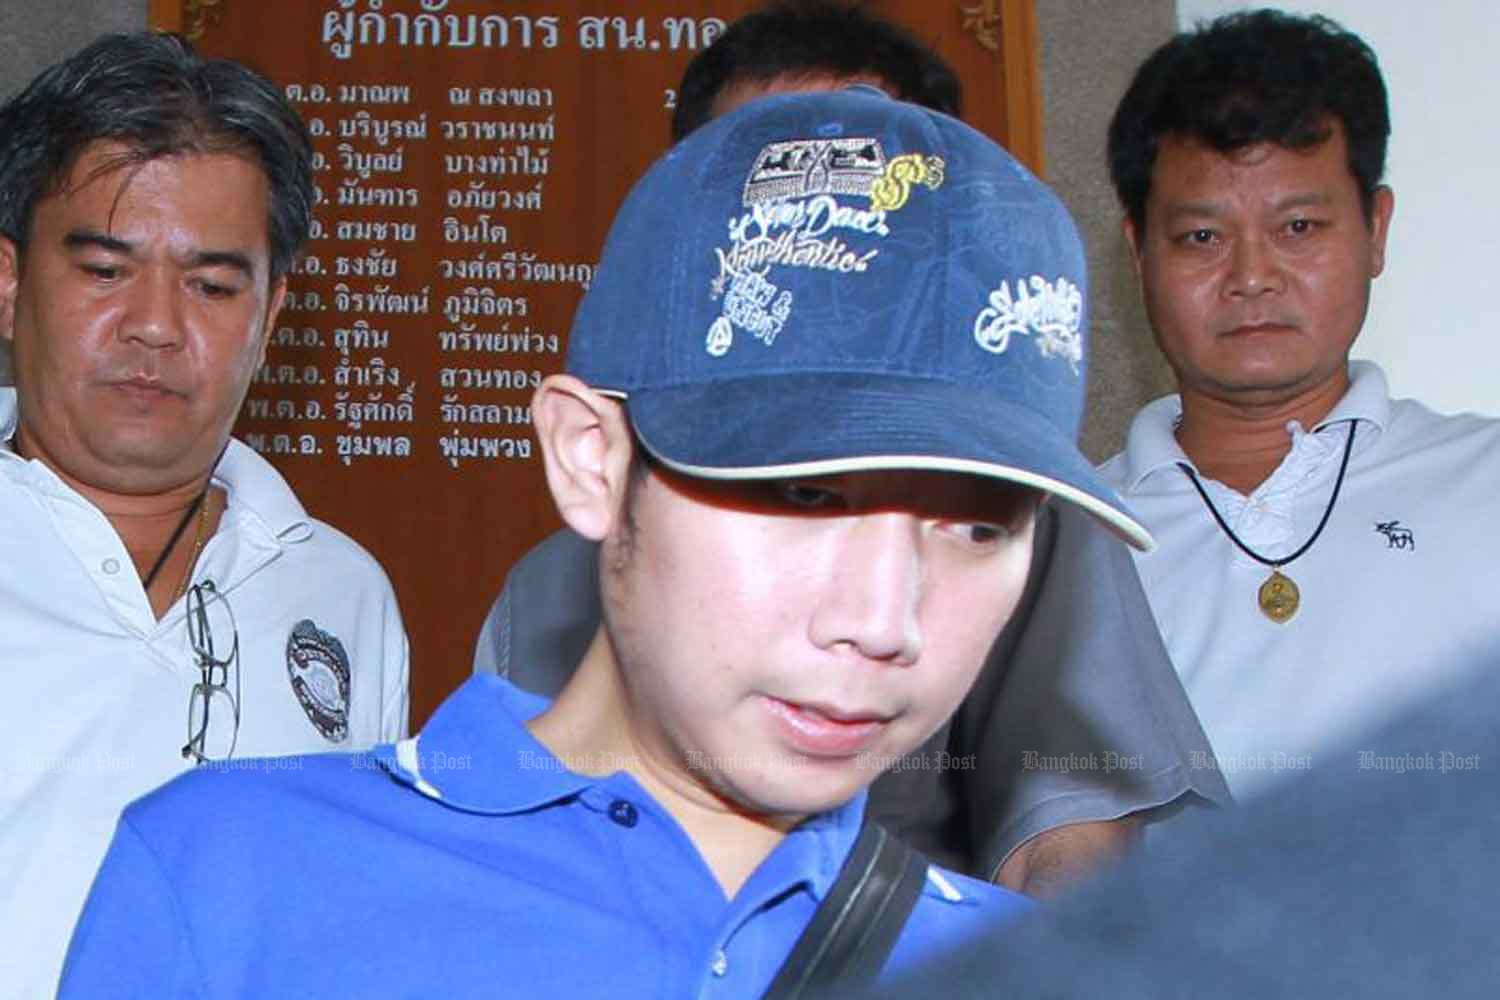 Vorayuth Yoovidhya is with police after his hit-and-run crash in Bangkok on Sept 3, 2012. (Photo: Somchai Poomlard)